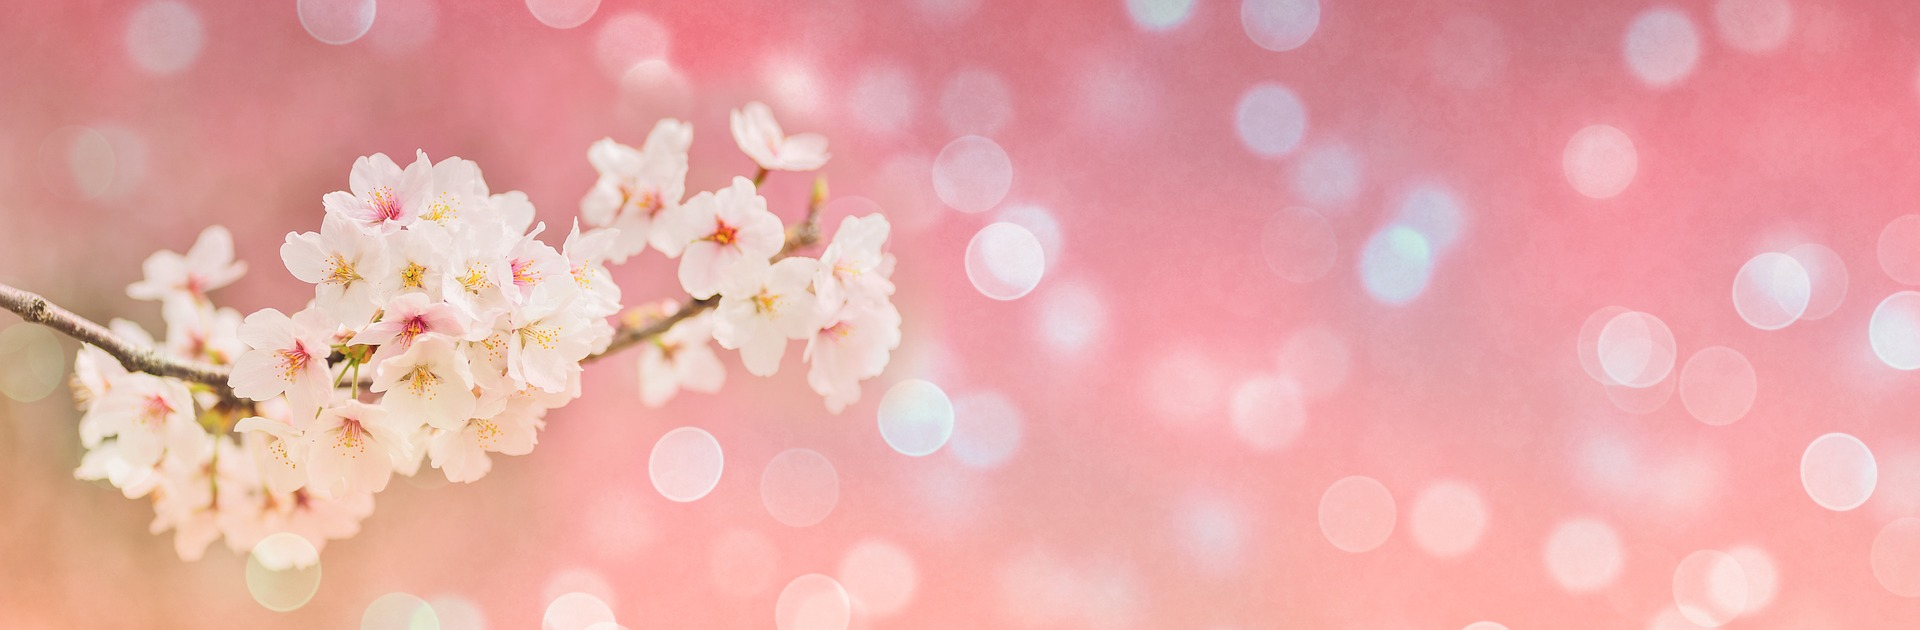 Spring Poem - Cherry Blossoms